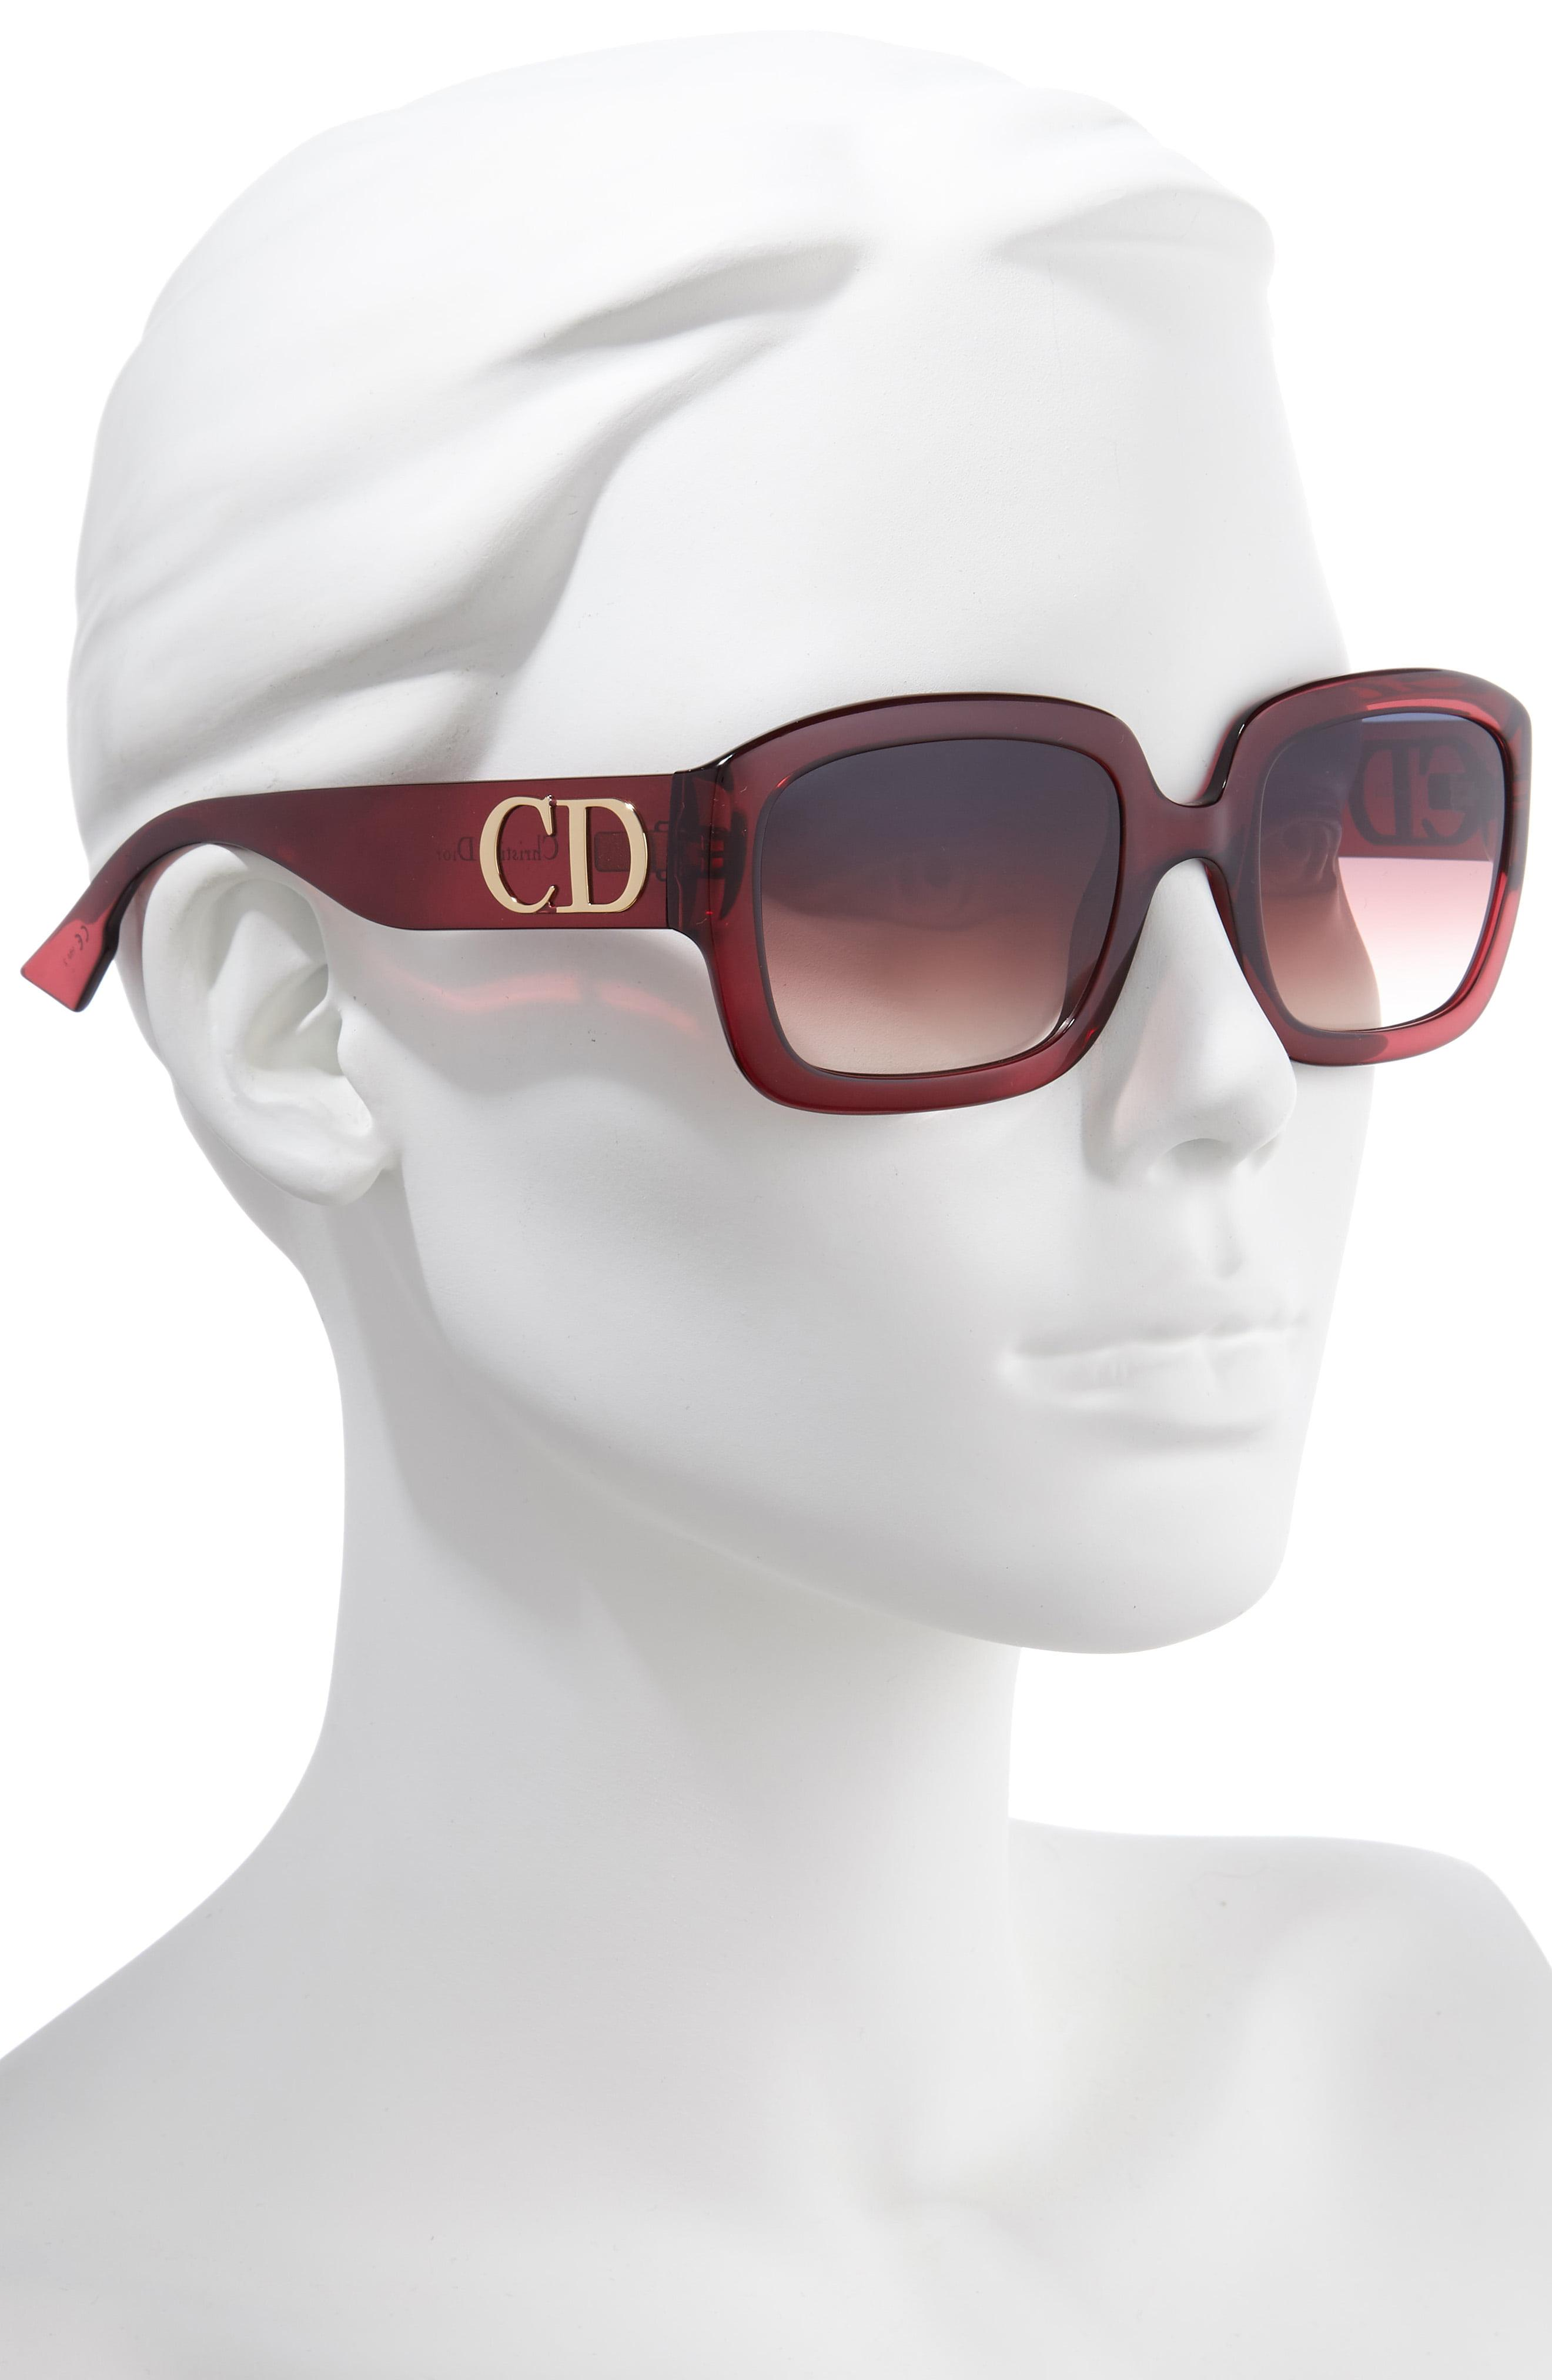 68300a4866 Dior - Multicolor 54mm Square Sunglasses - Opal Burgundy - Lyst. View  fullscreen